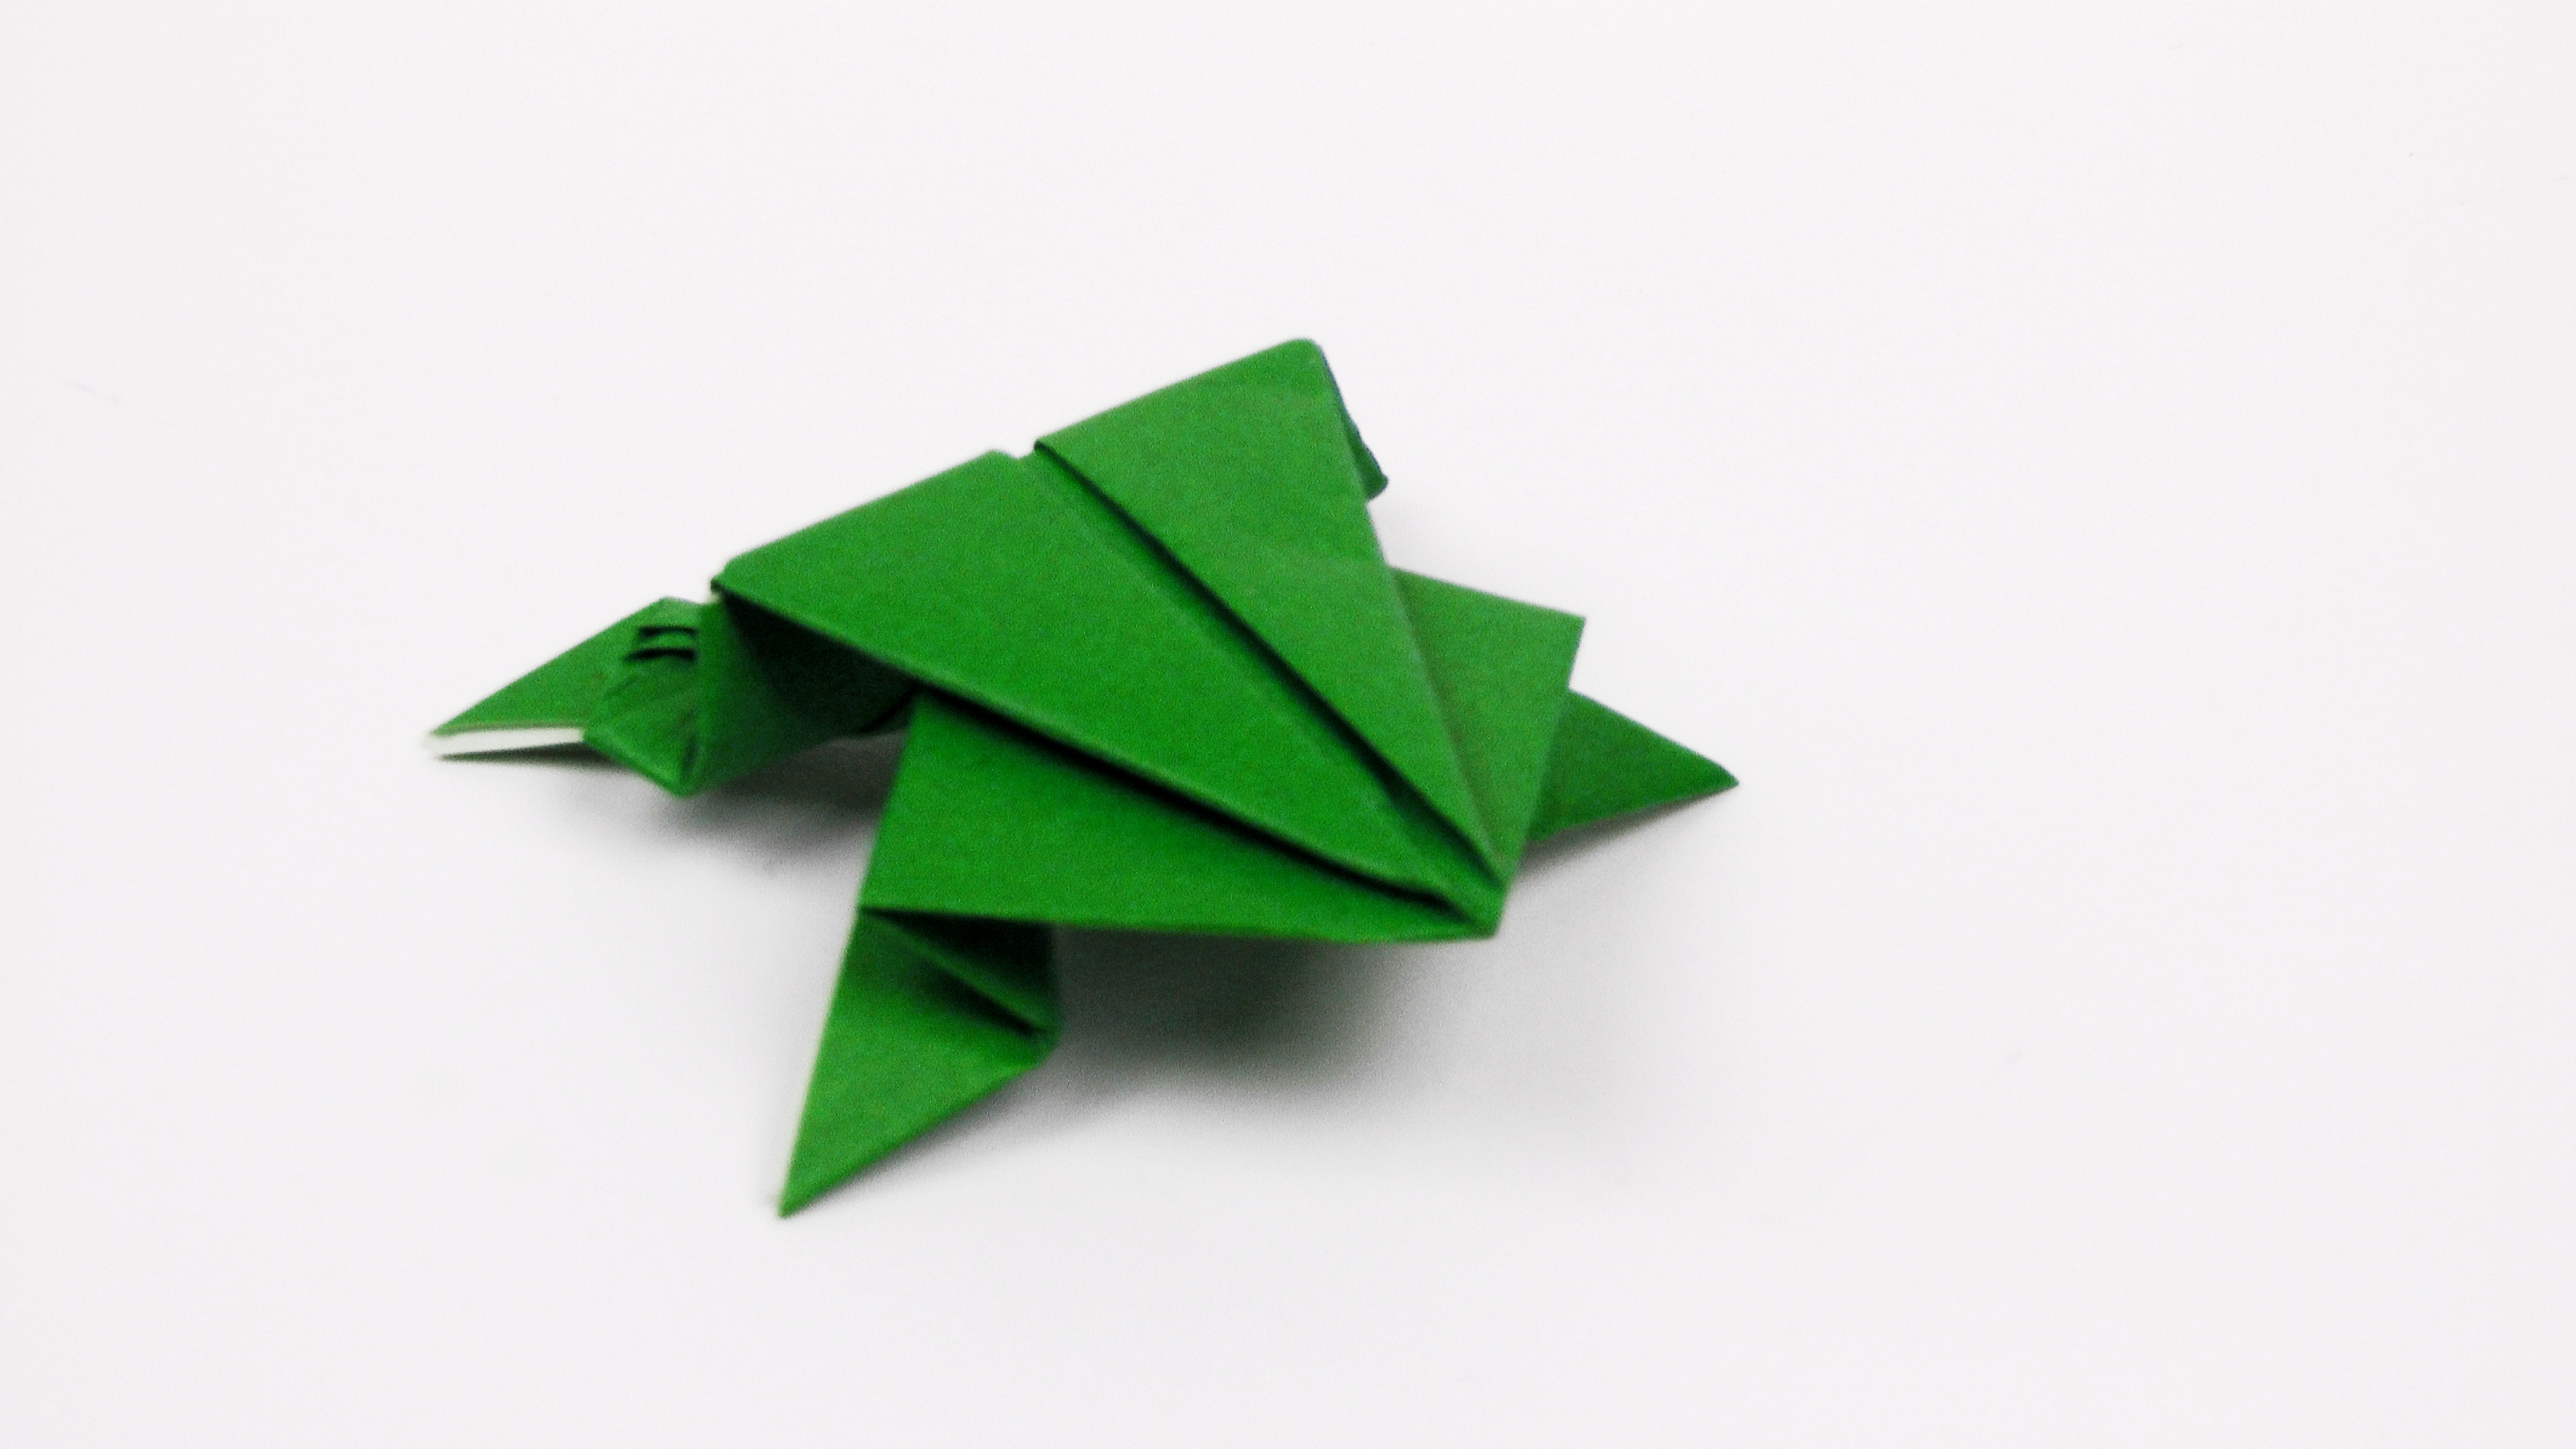 How to Make an Origami Frog  Origami Instructions